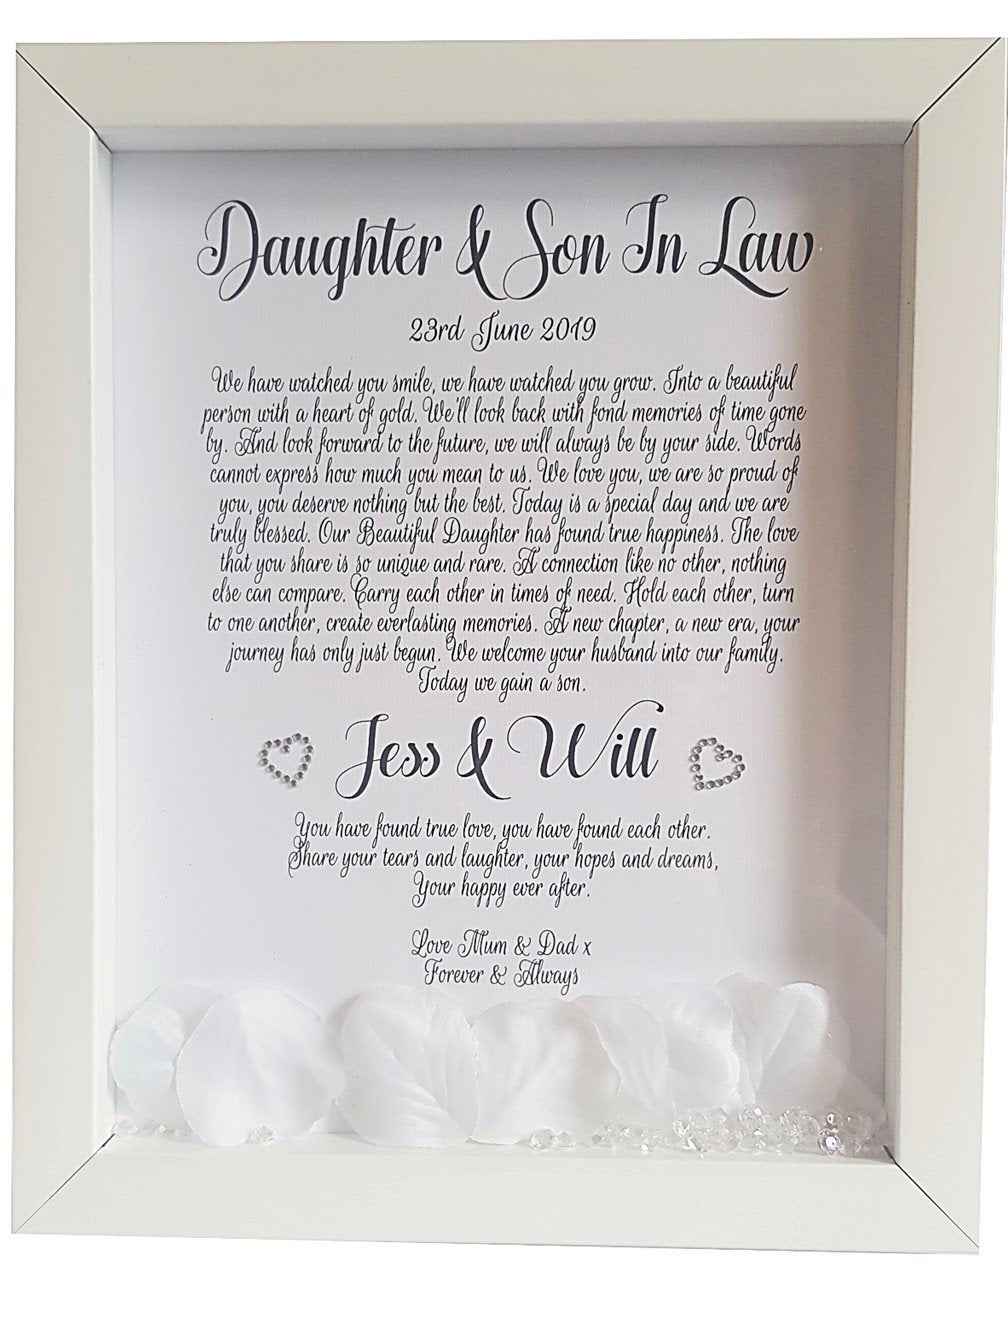 Daughter & Son in Law Framed Wedding Poem - PureEssenceGreetings